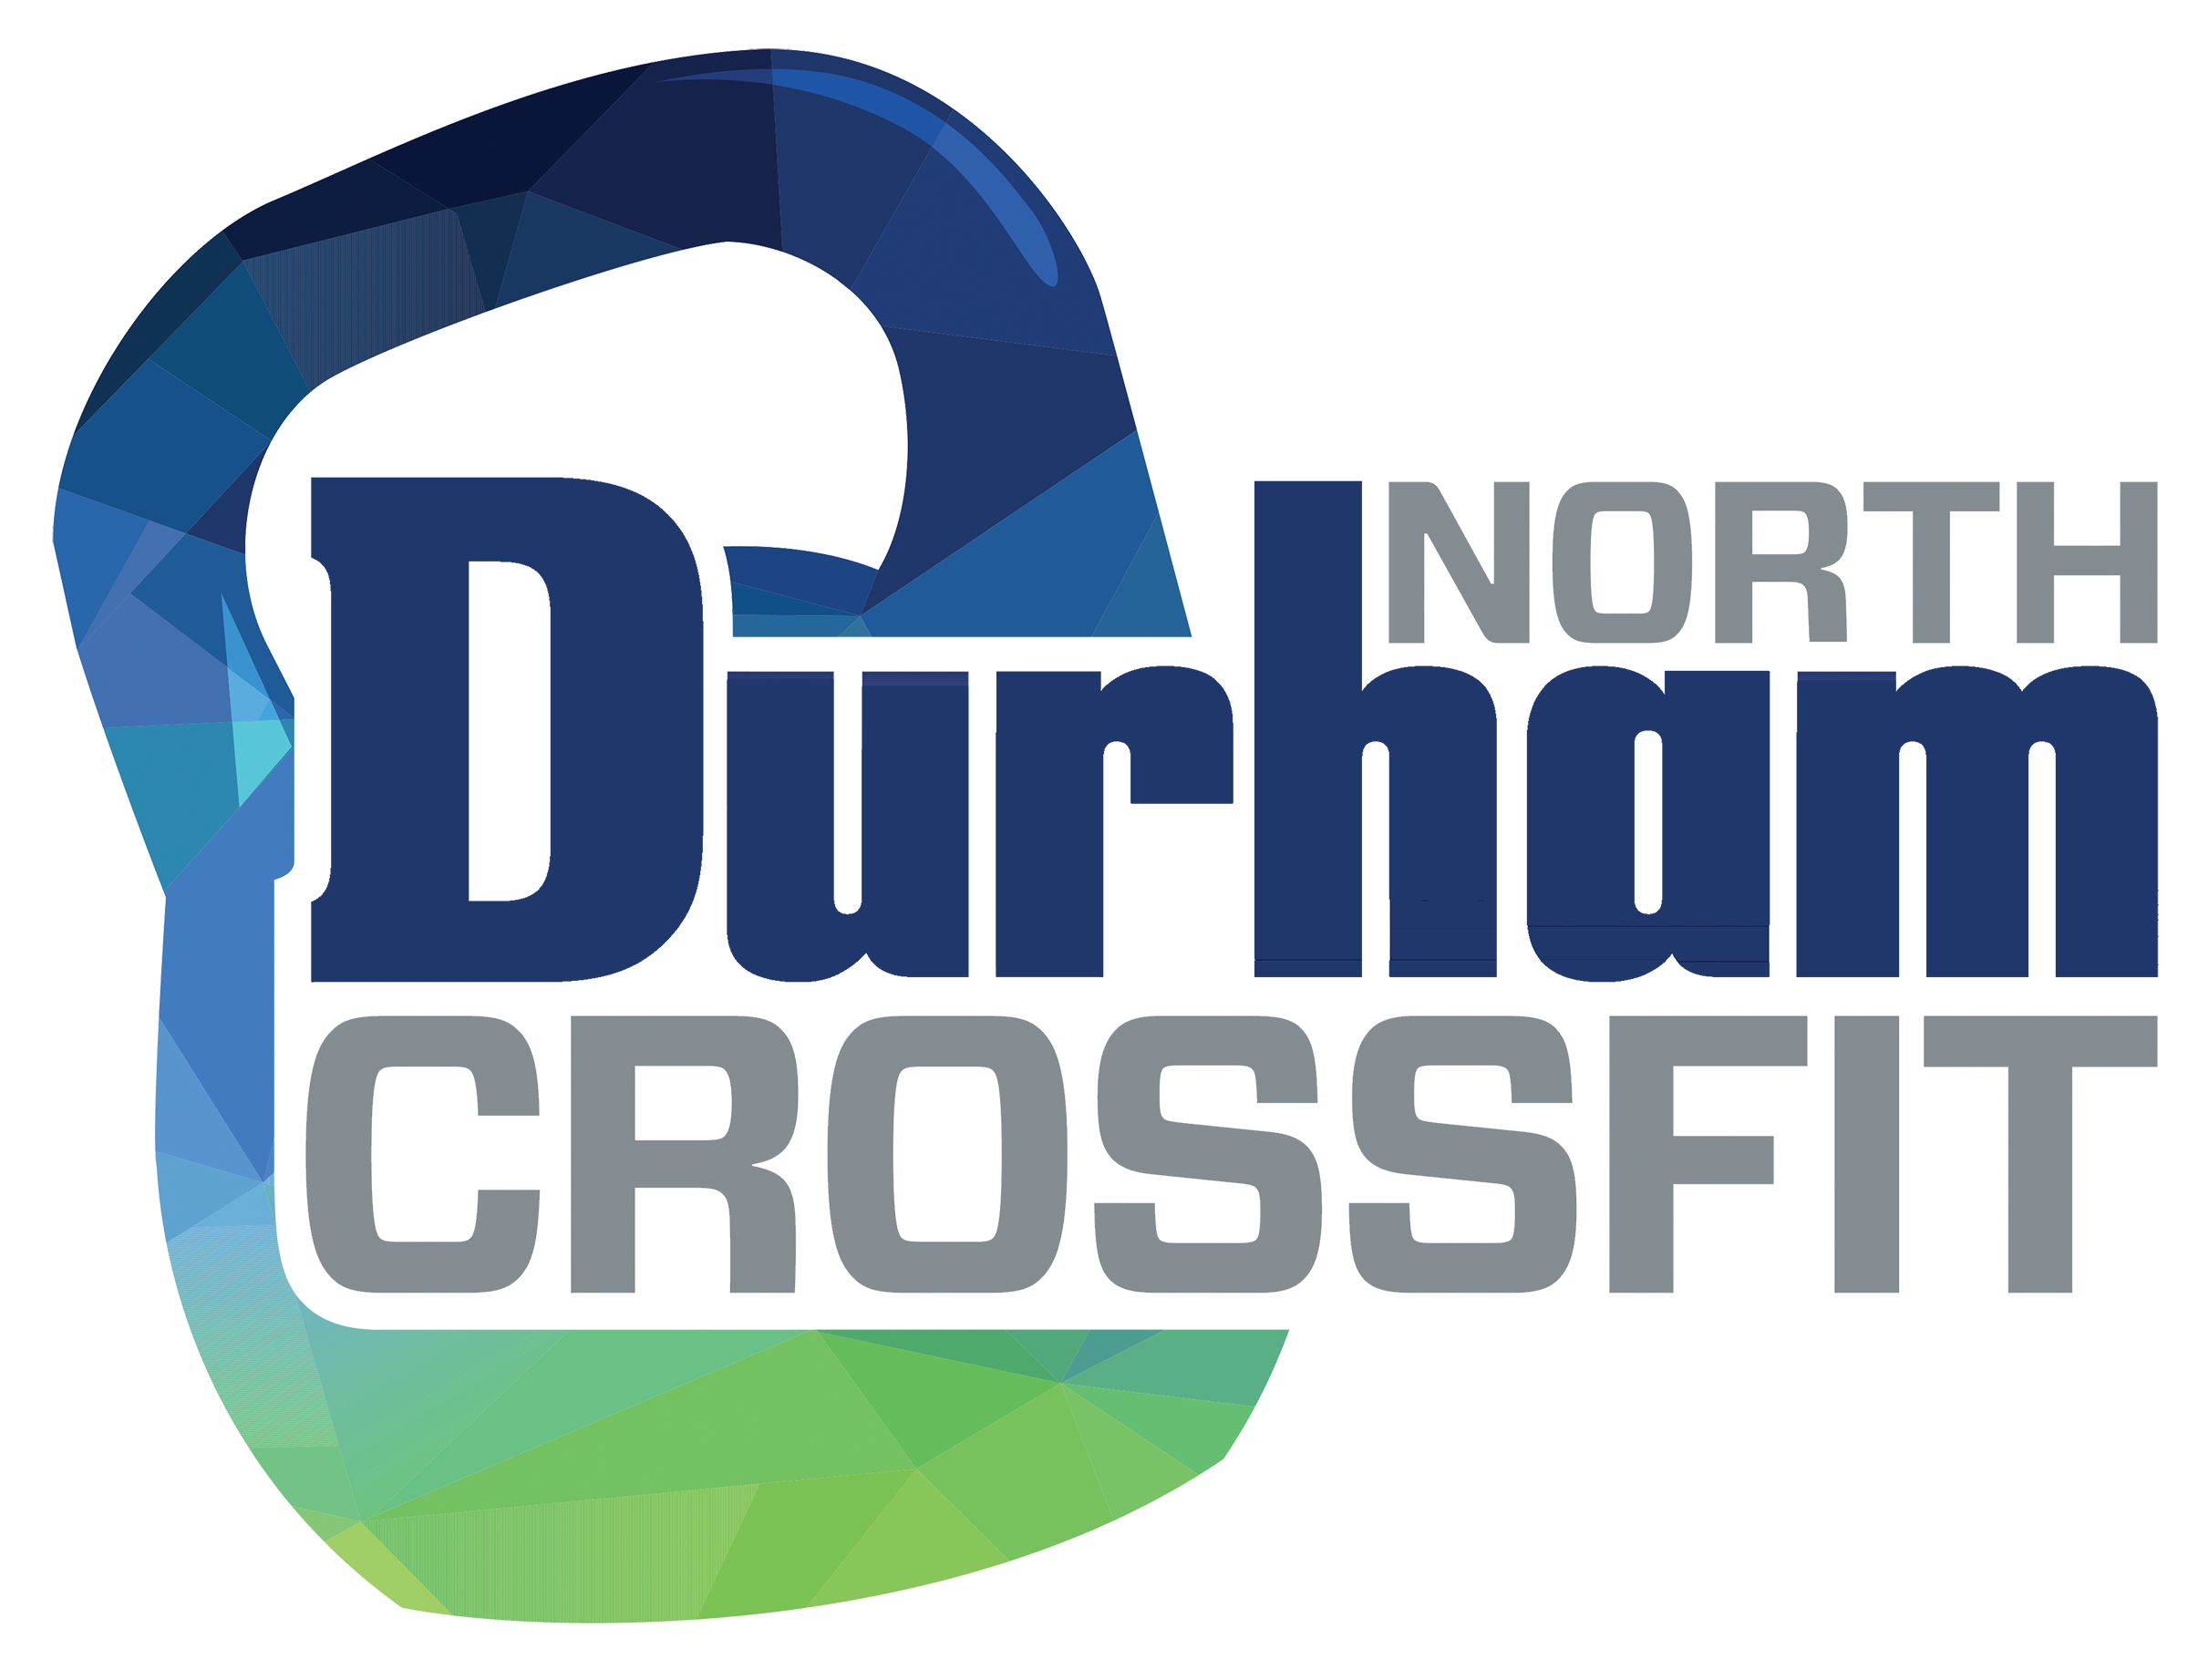 North Durham CrossFit logo